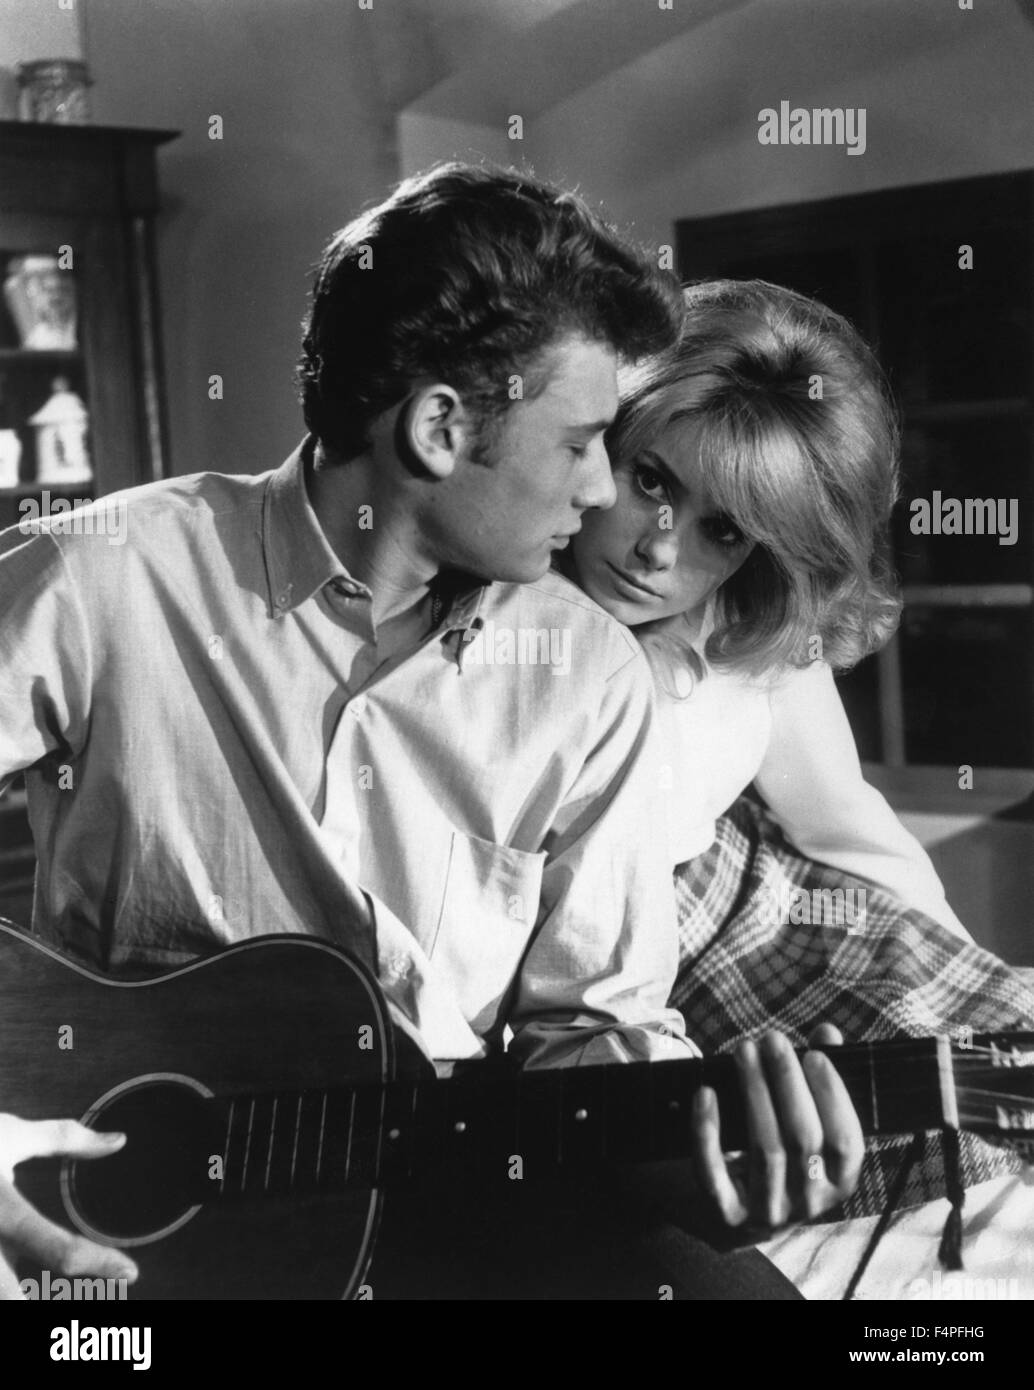 Johnny Hallyday and Catherine Deneuve / Beds and Broads / 1961 directed by Marc Allegret and Michel Boisrond - Stock Image